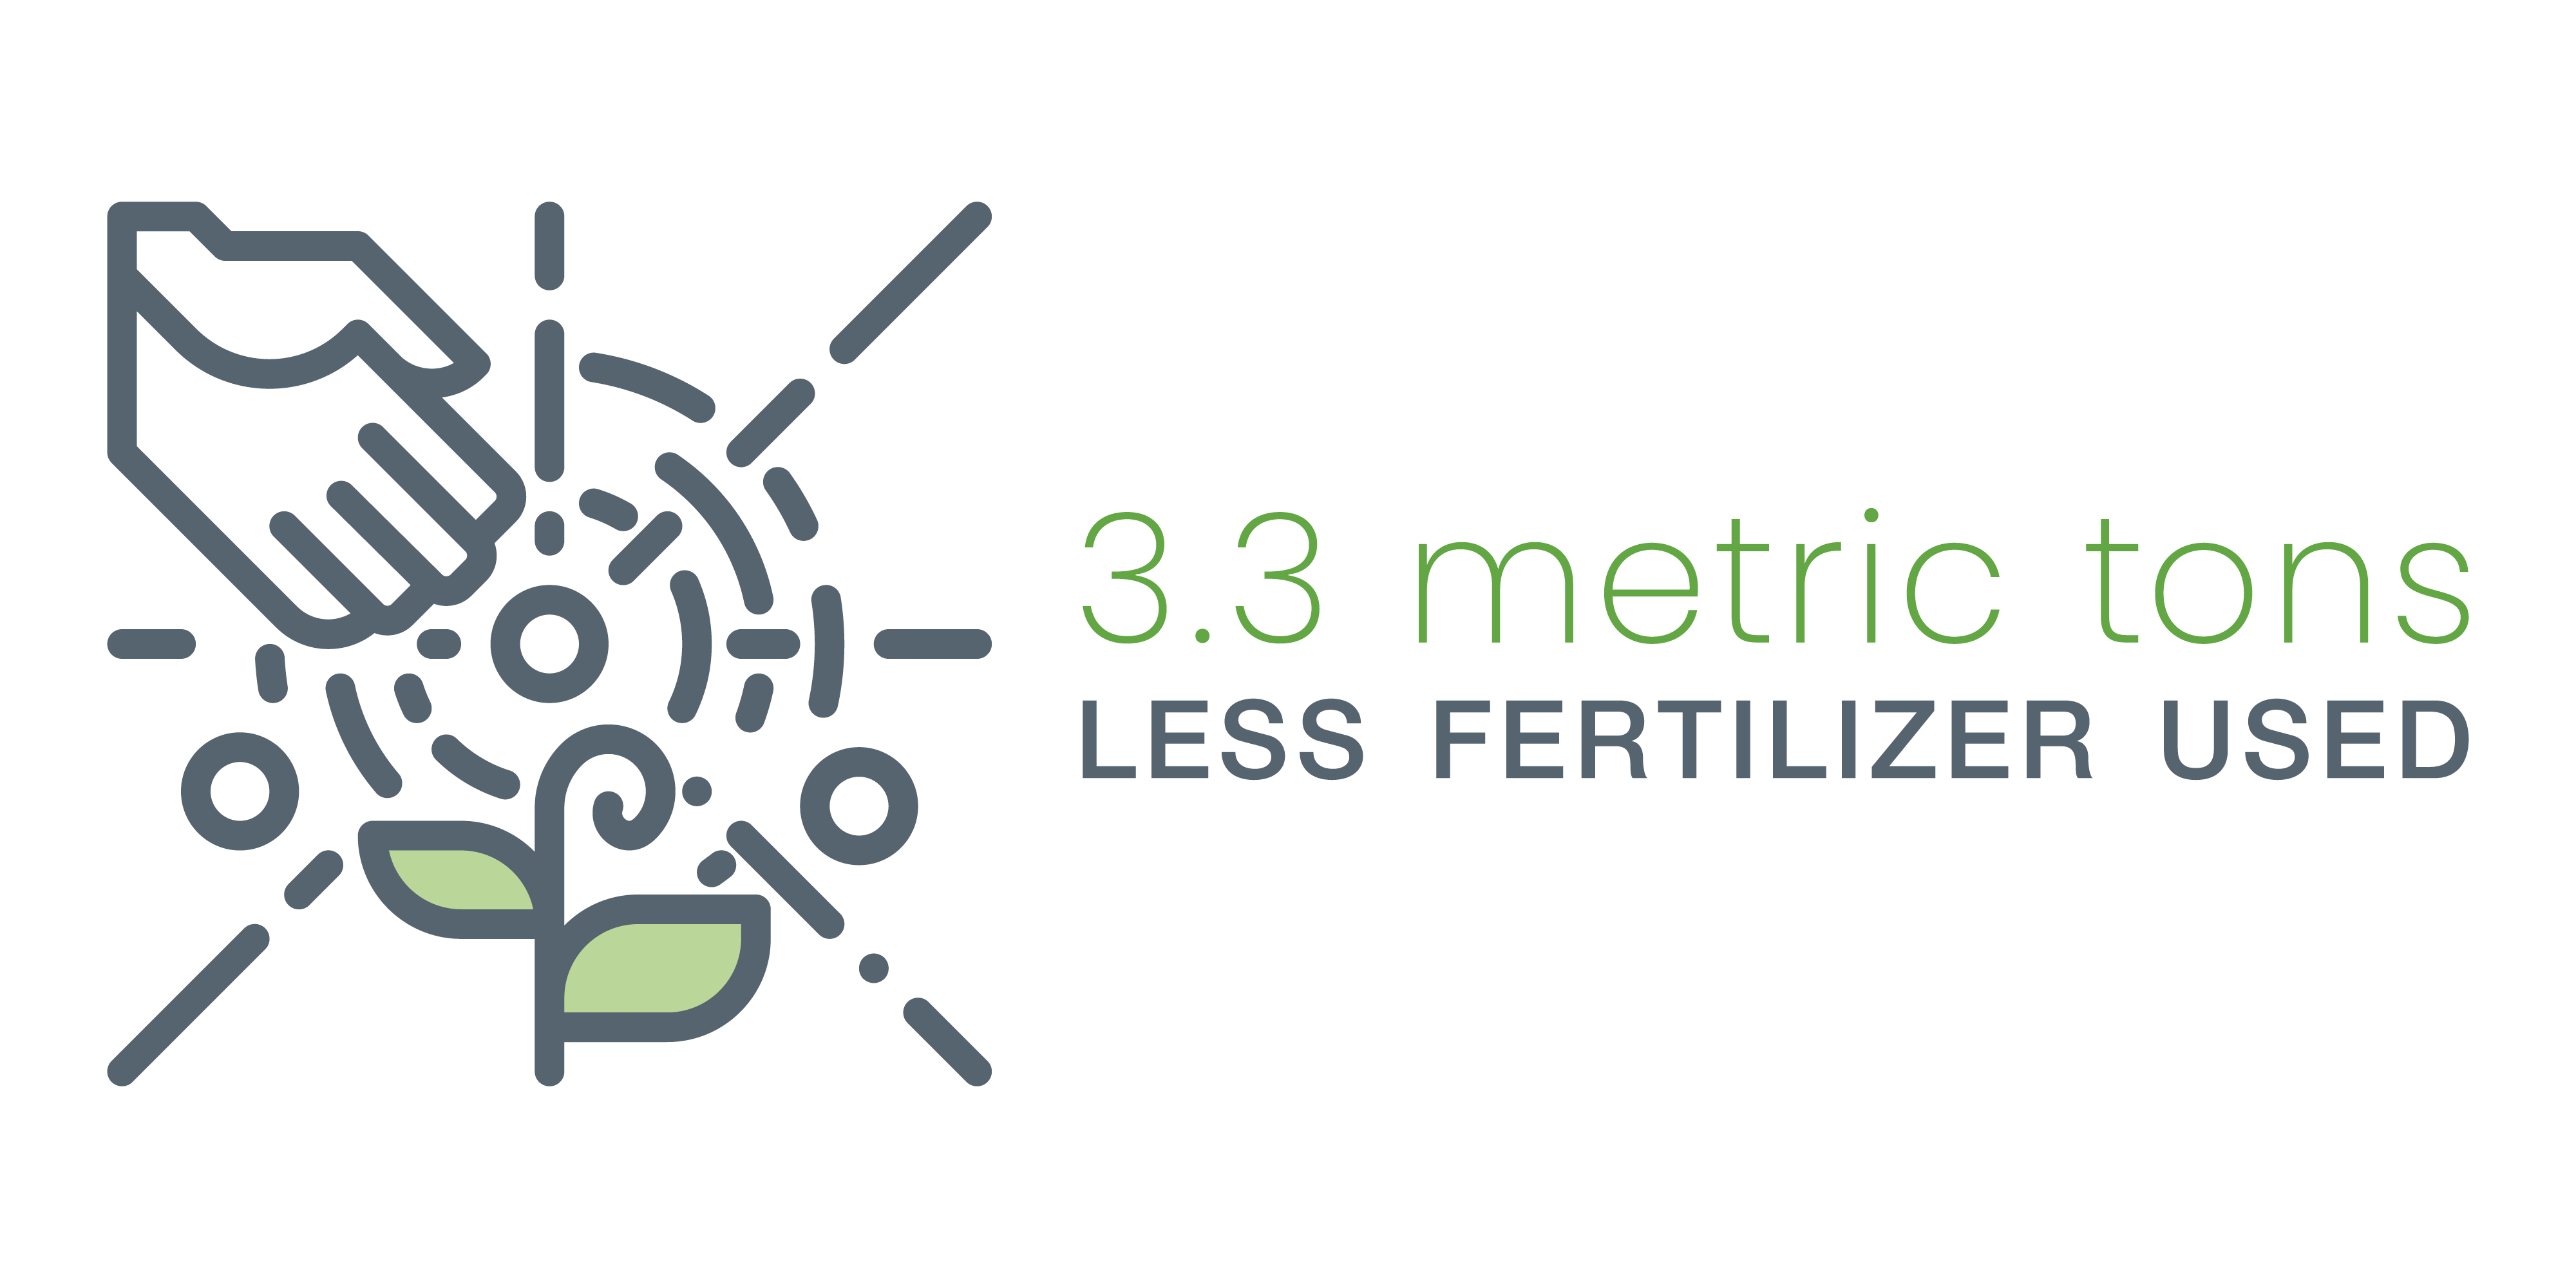 3.3 metric tons less fertilizer used